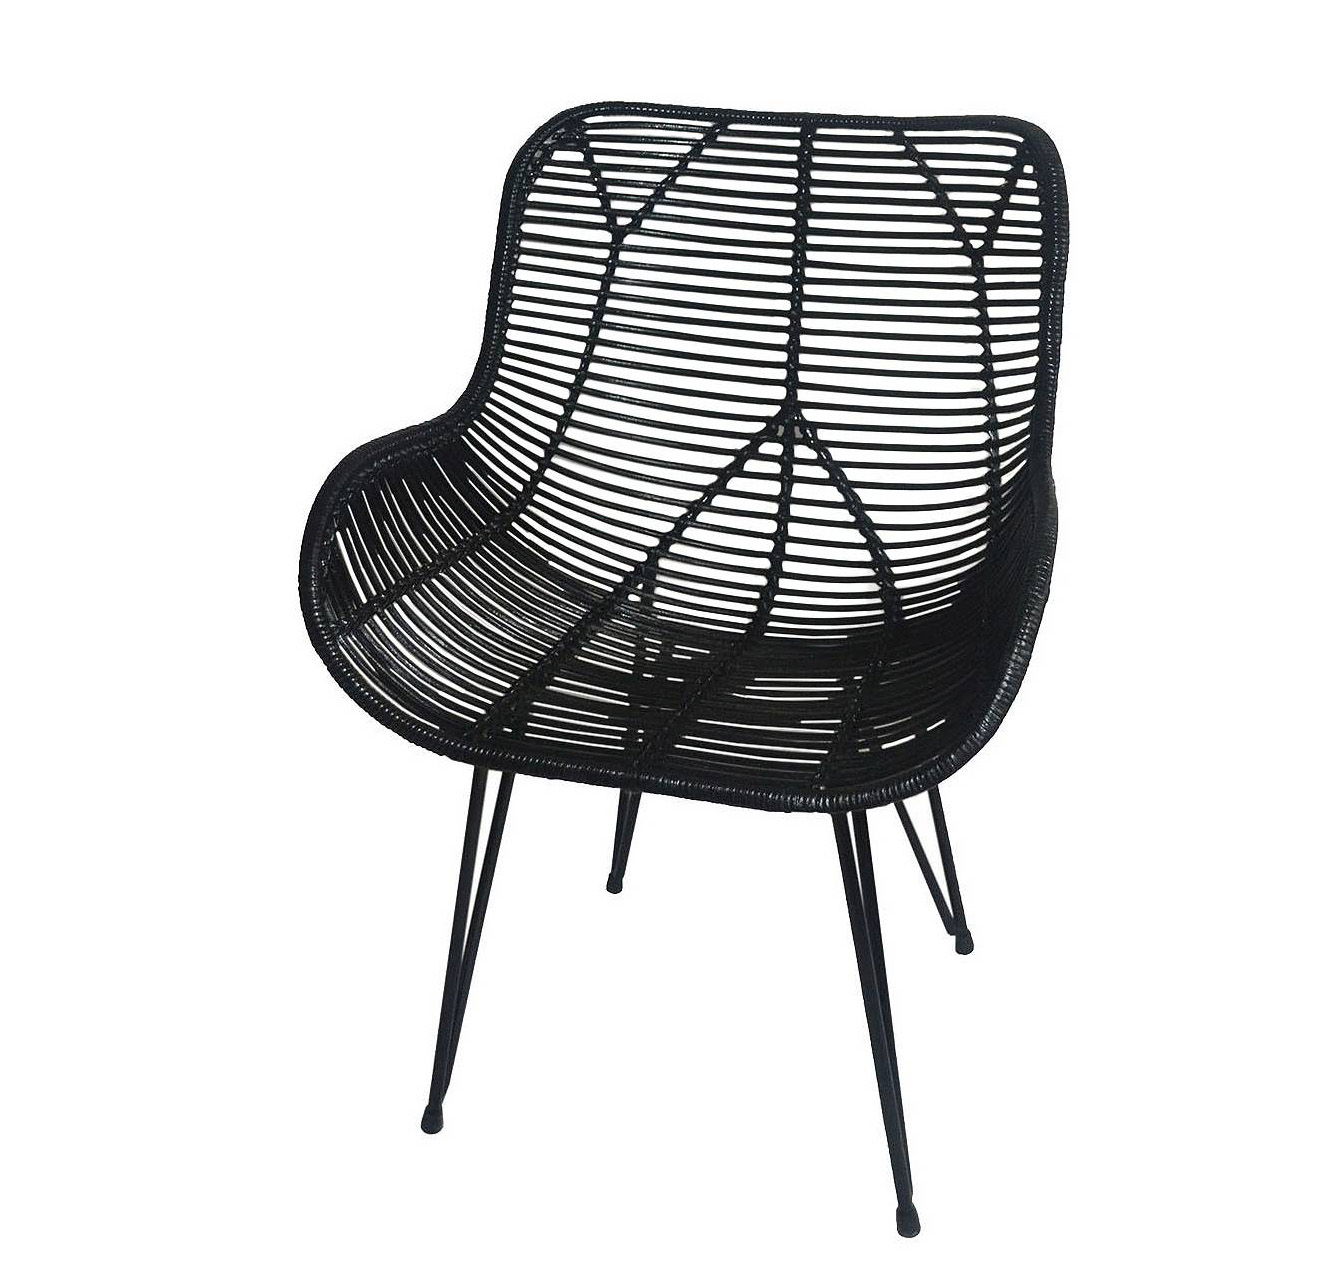 12 Really Good Looking Wicker  Rattan Chairs  Apartment